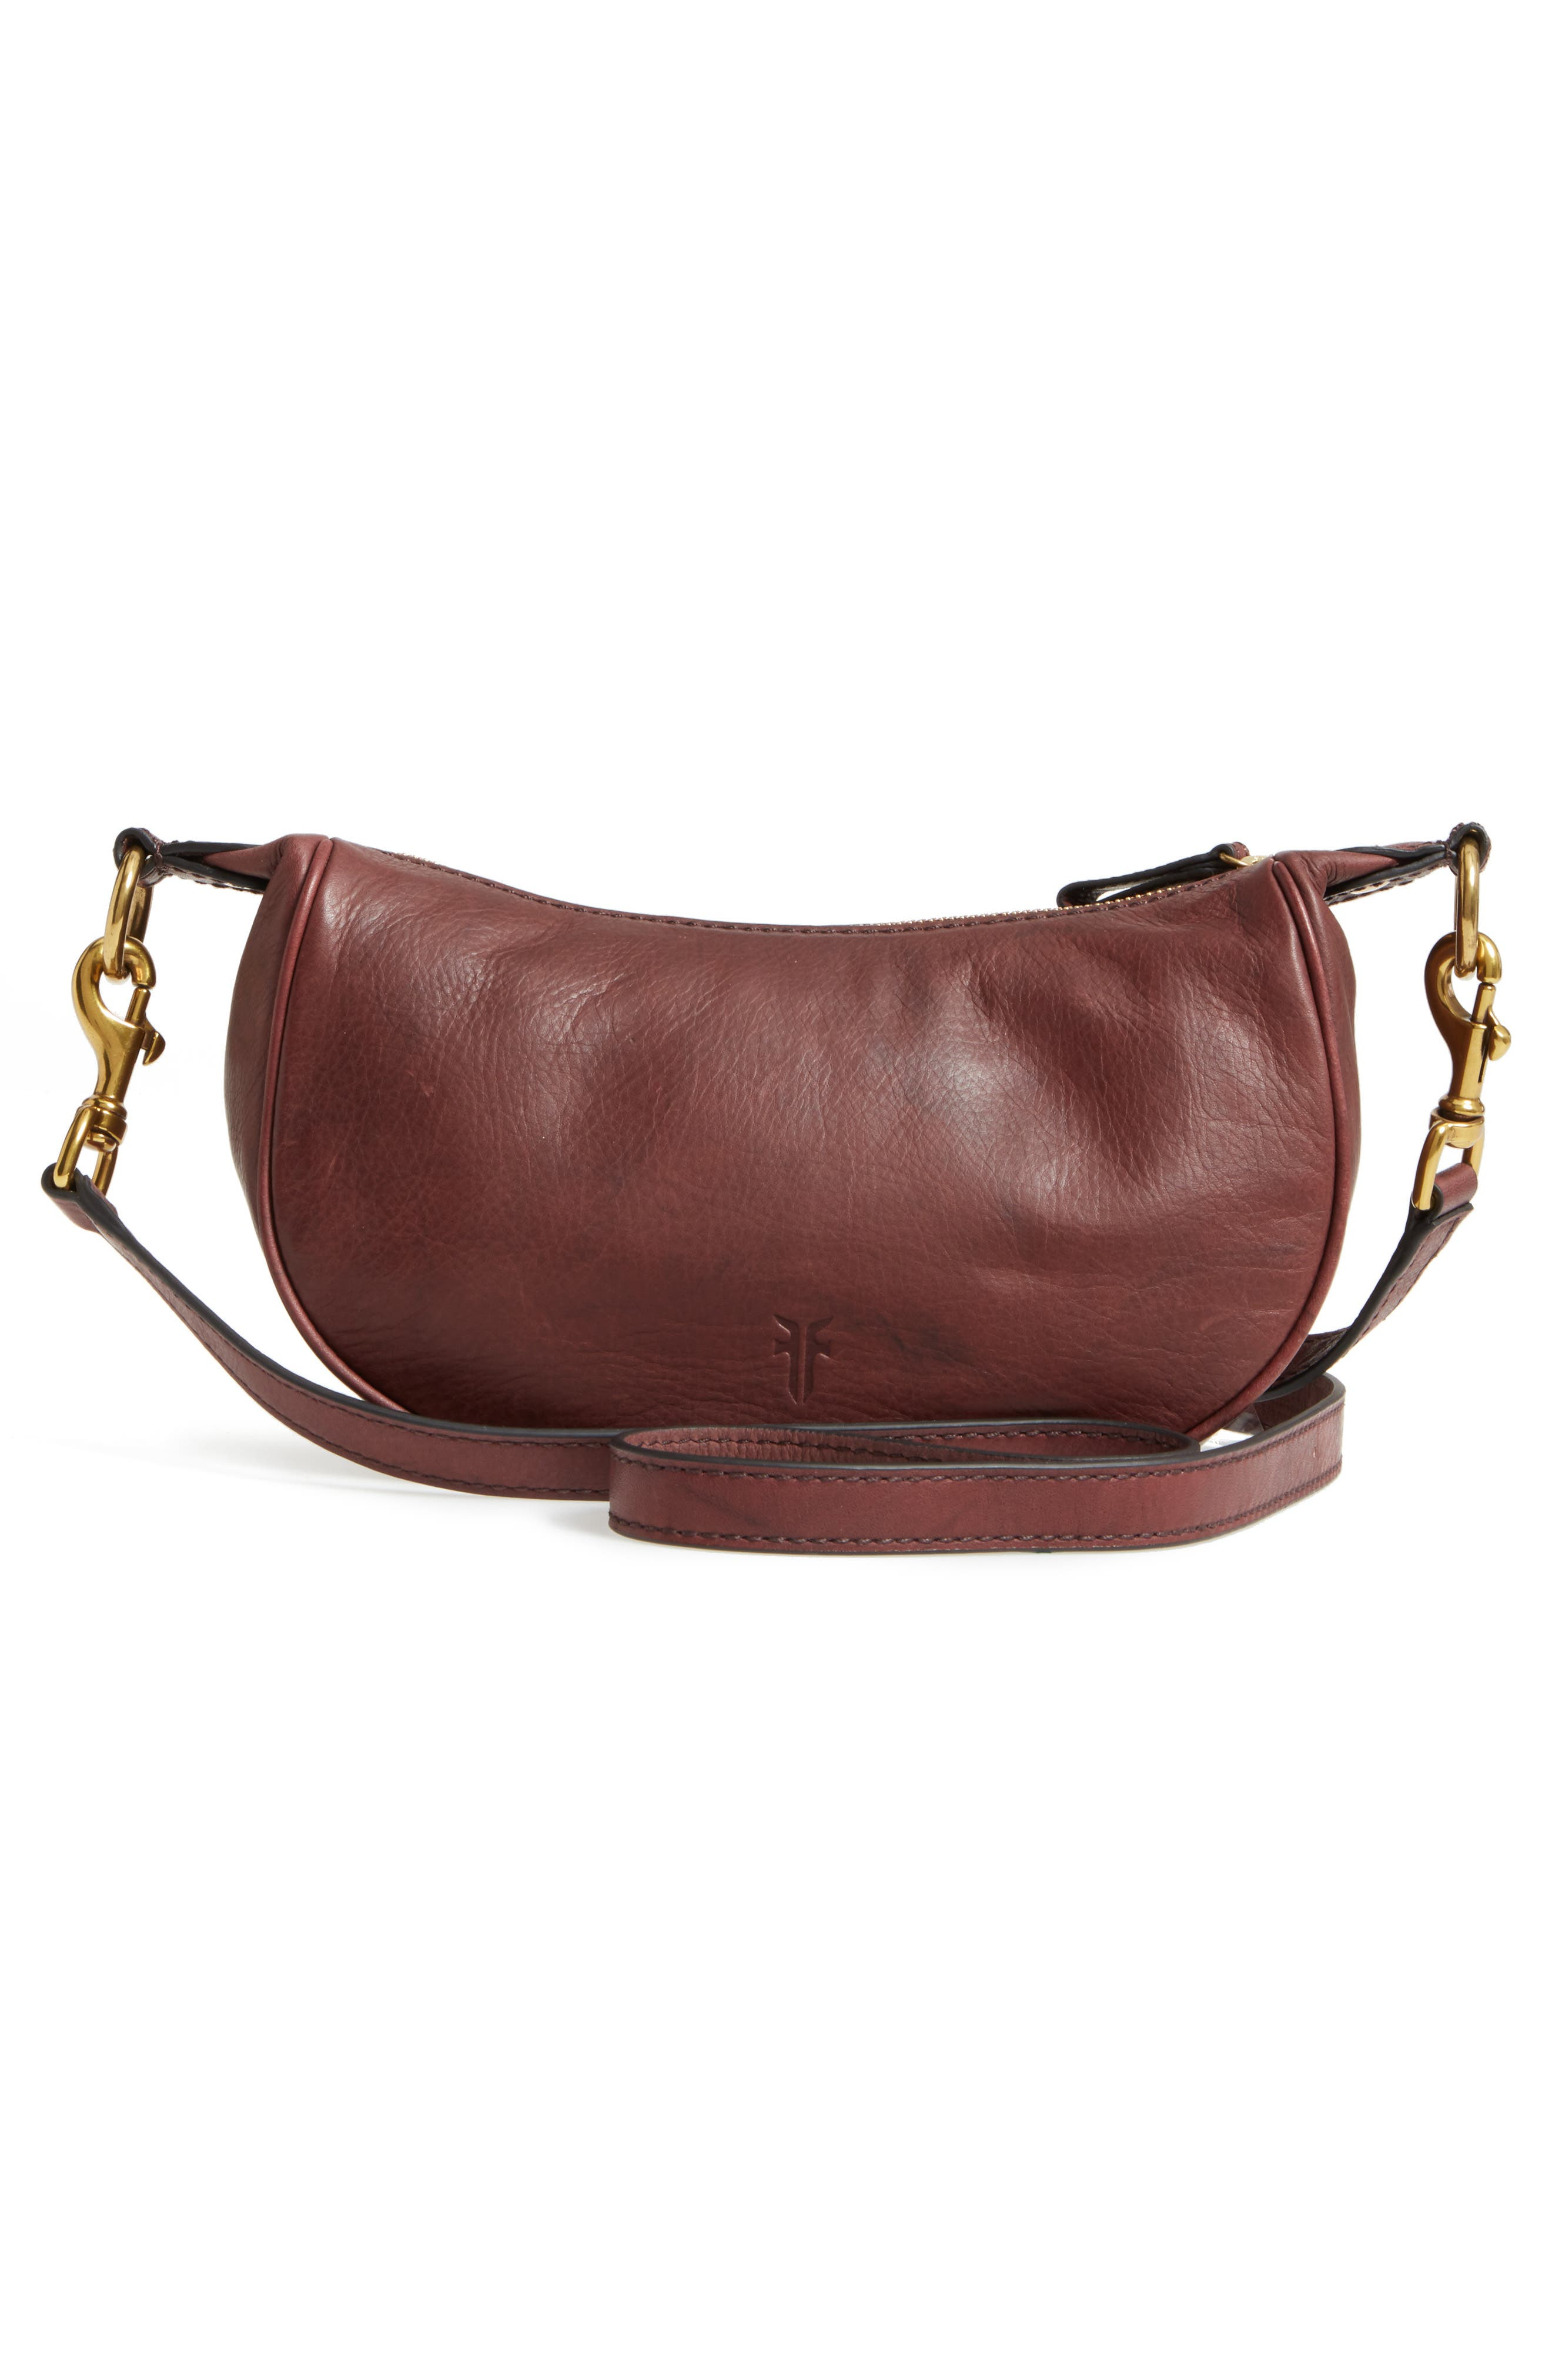 Small Campus Leather Crossbody Bag,                             Alternate thumbnail 3, color,                             210